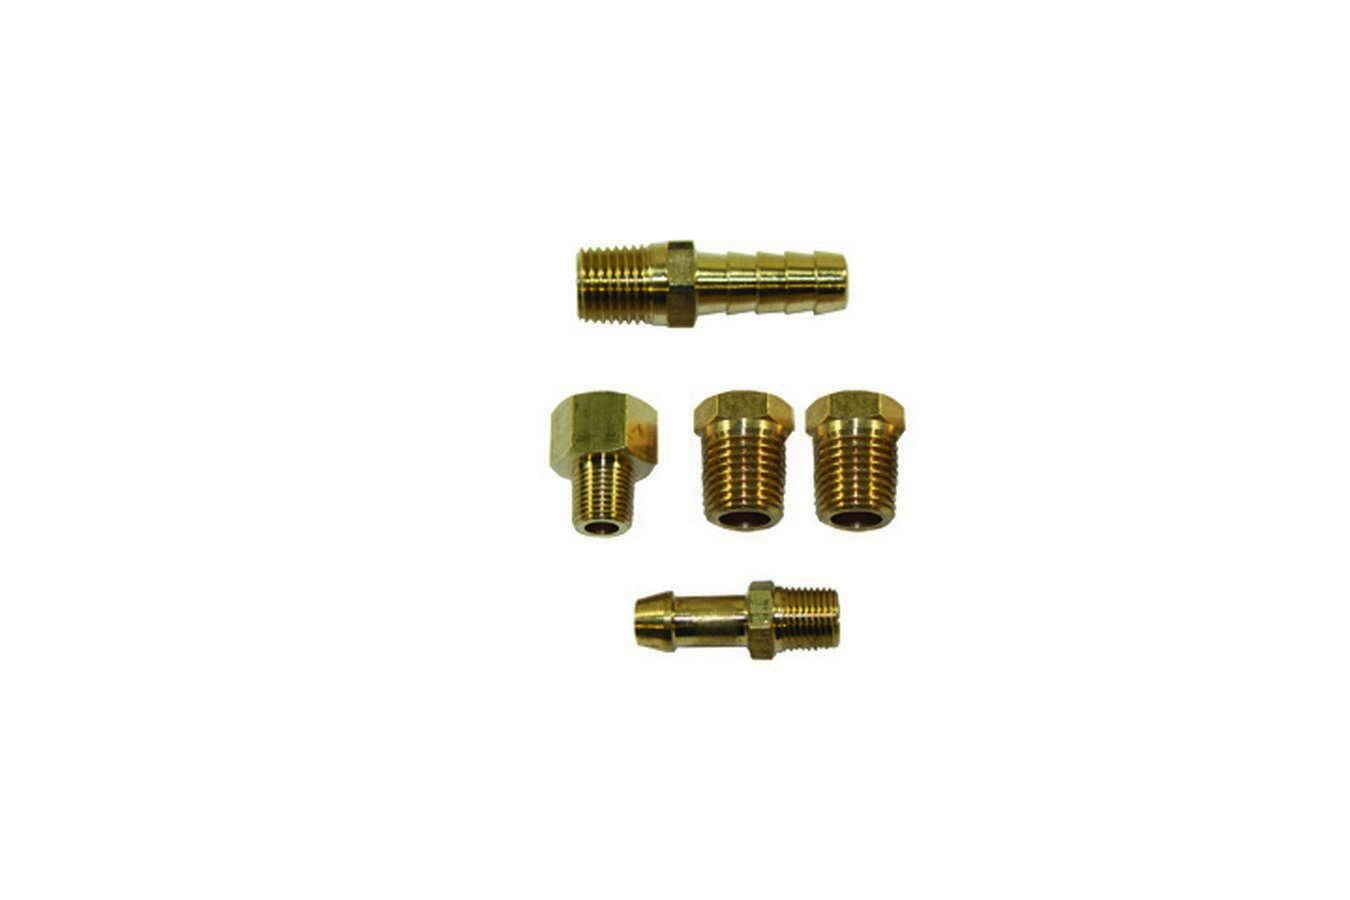 Specialty Products 3160 Fuel Pump Fitting Kit, Two 1/4 in NPT Male to 1/8 NPT Female, One 1/4 in NPT Male to 3/8 in Hose Barb, 1/8 in NPT Male to 1/4 in Hose Barb, 1/8 in NPT Male to 1/2-20 in IF Female, Brass, Natural, Universal, Kit